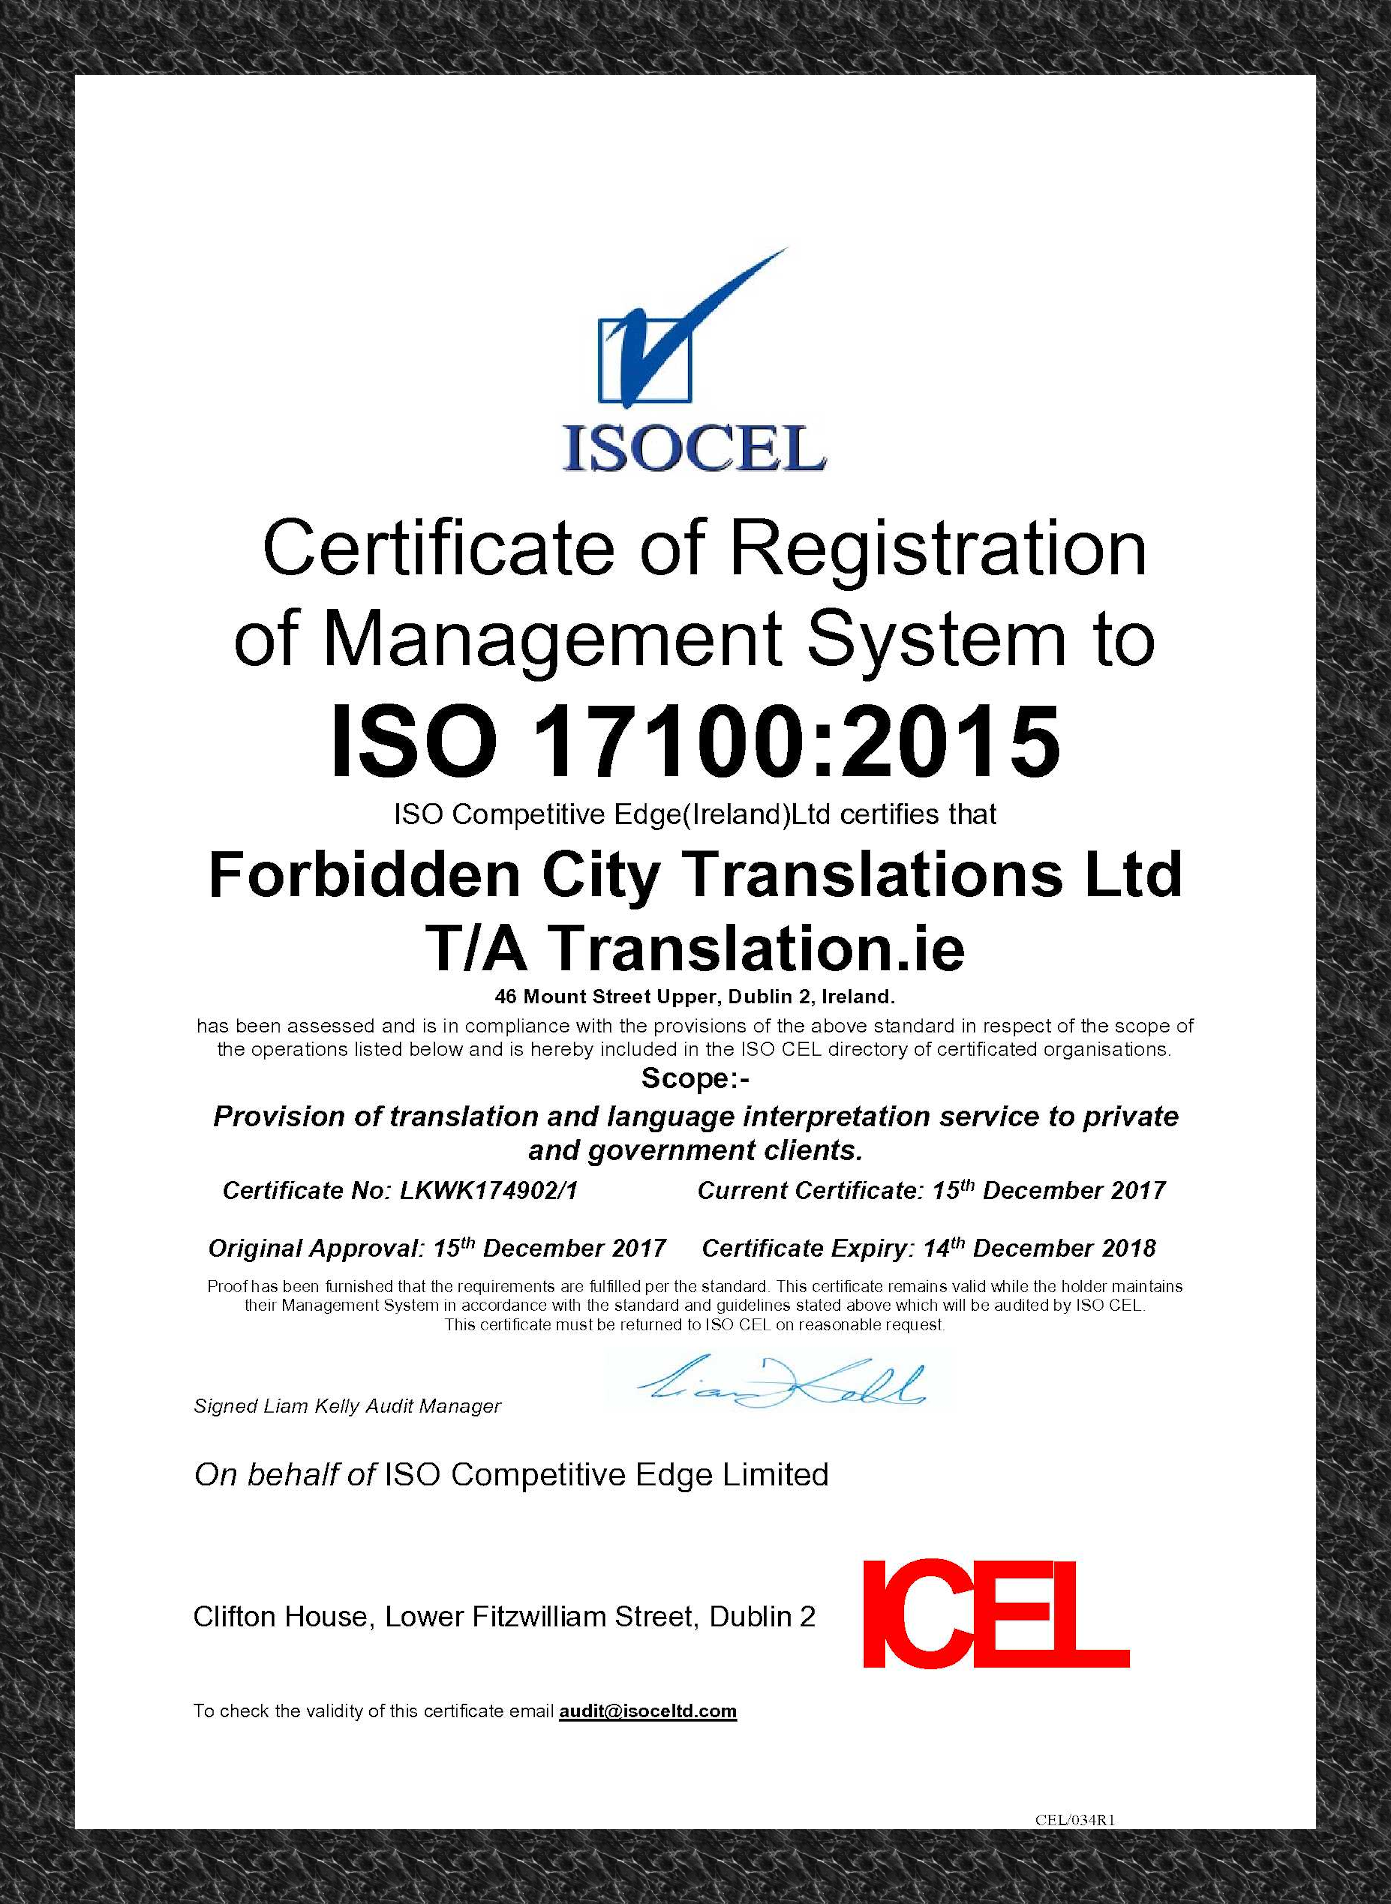 Translation.ie ISO 9001:2015 Certificate